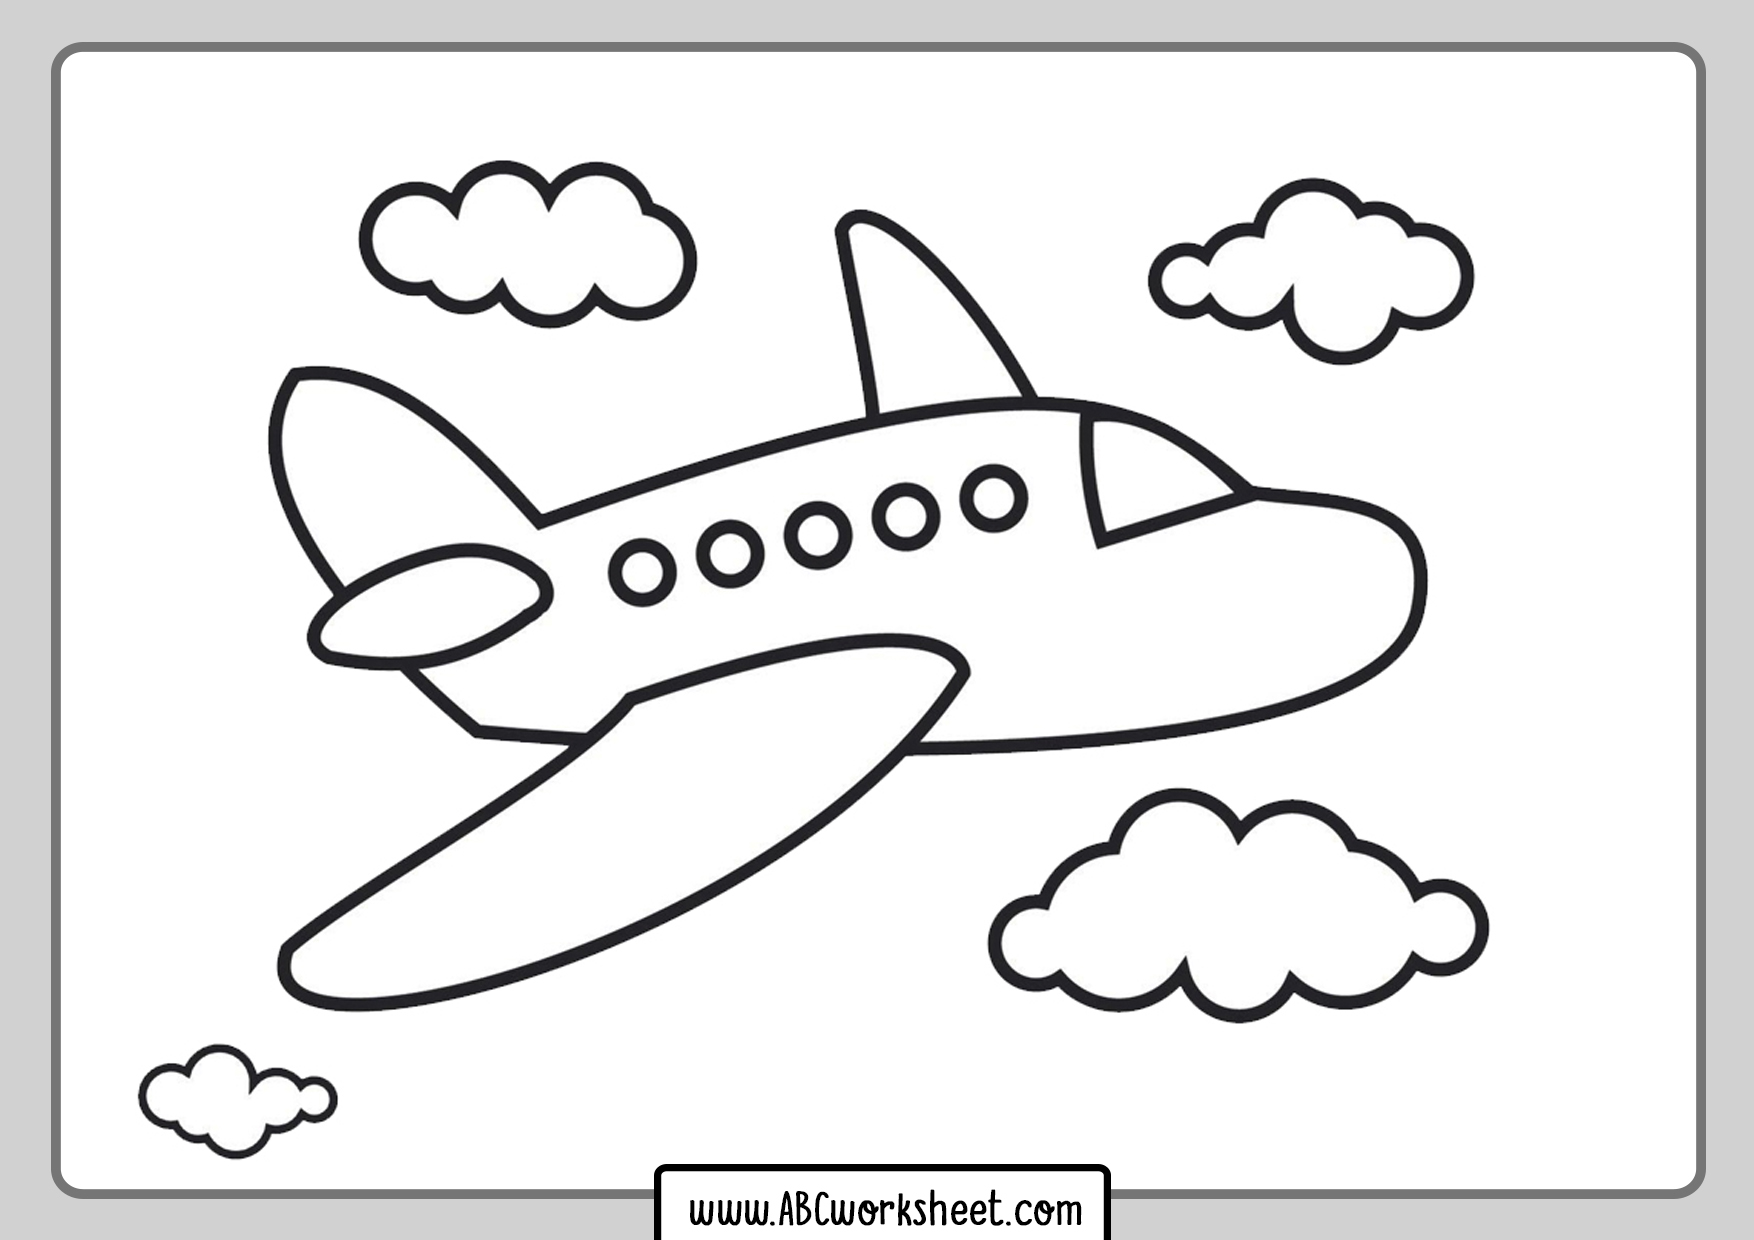 Kindergarten Airplane Coloring Page